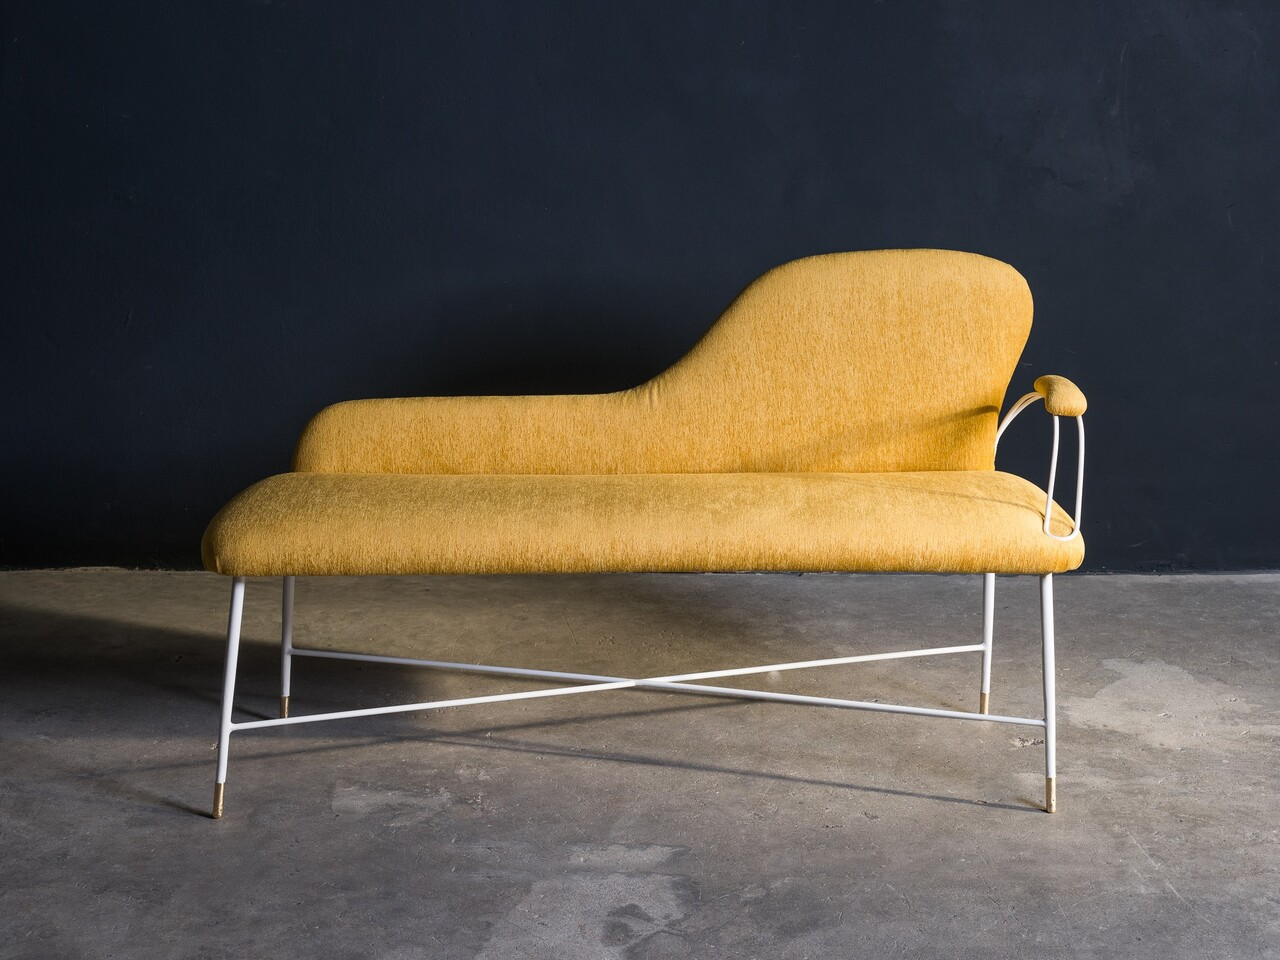 1950s Italian upholstered bench